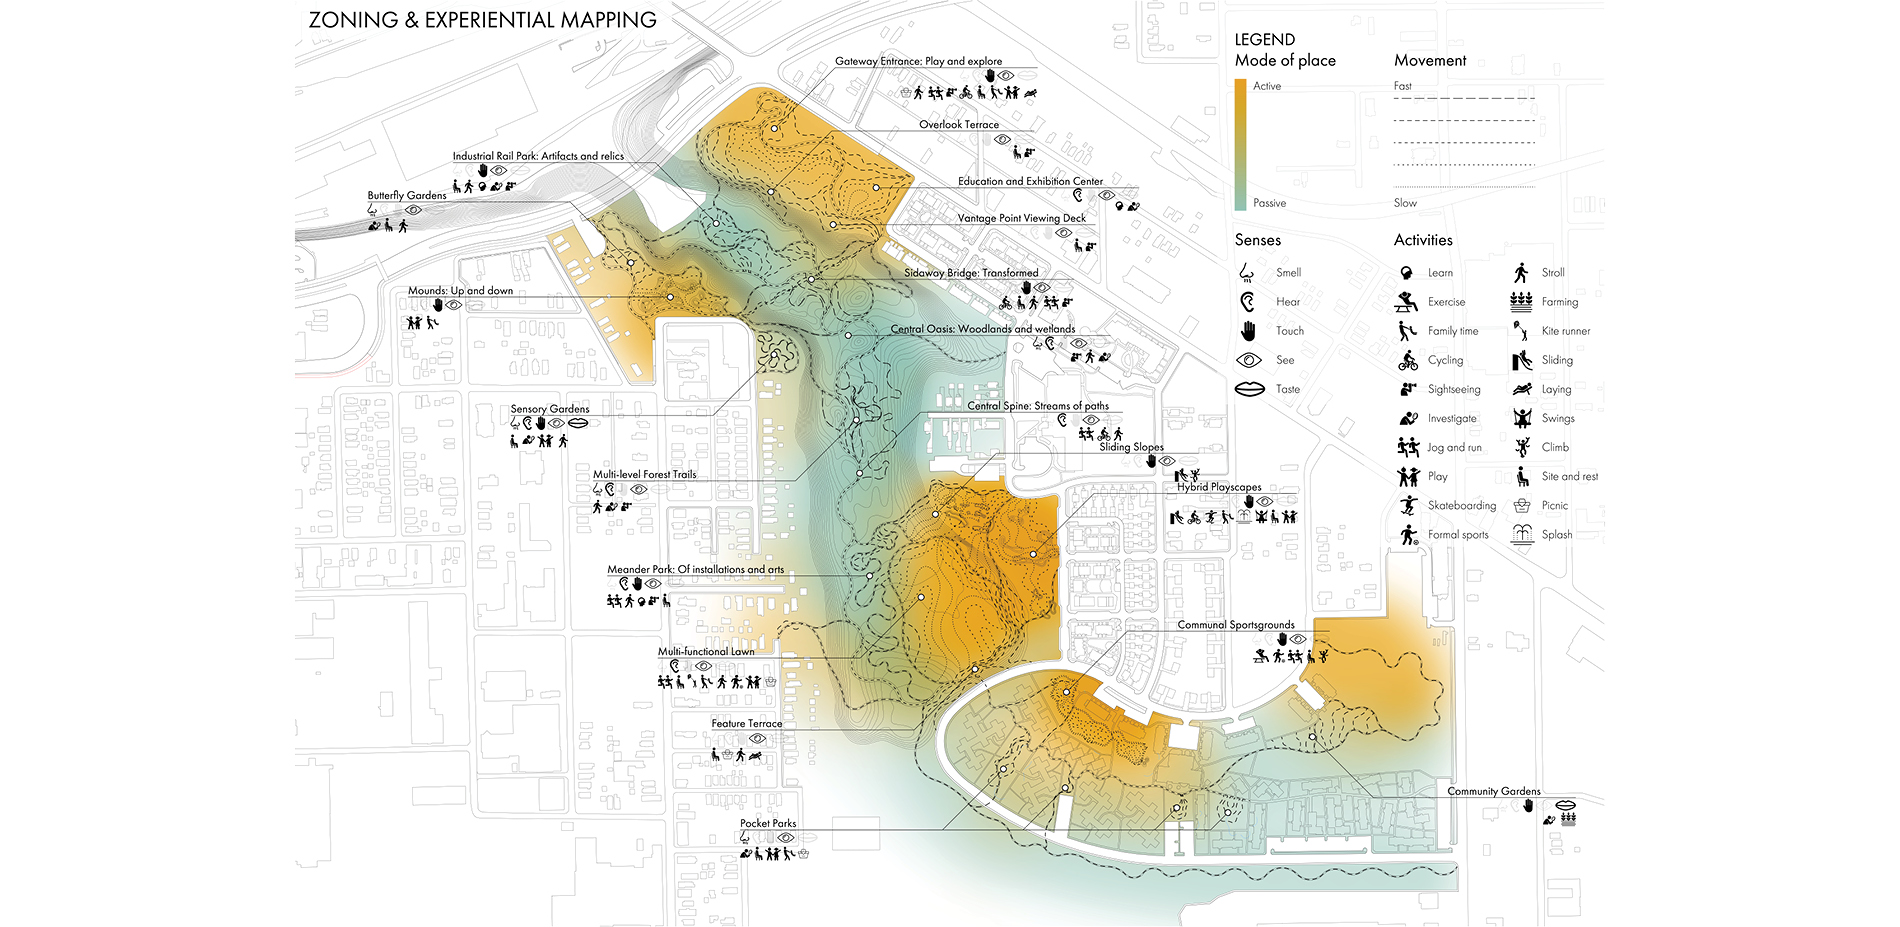 Zoning & Experiential Mapping